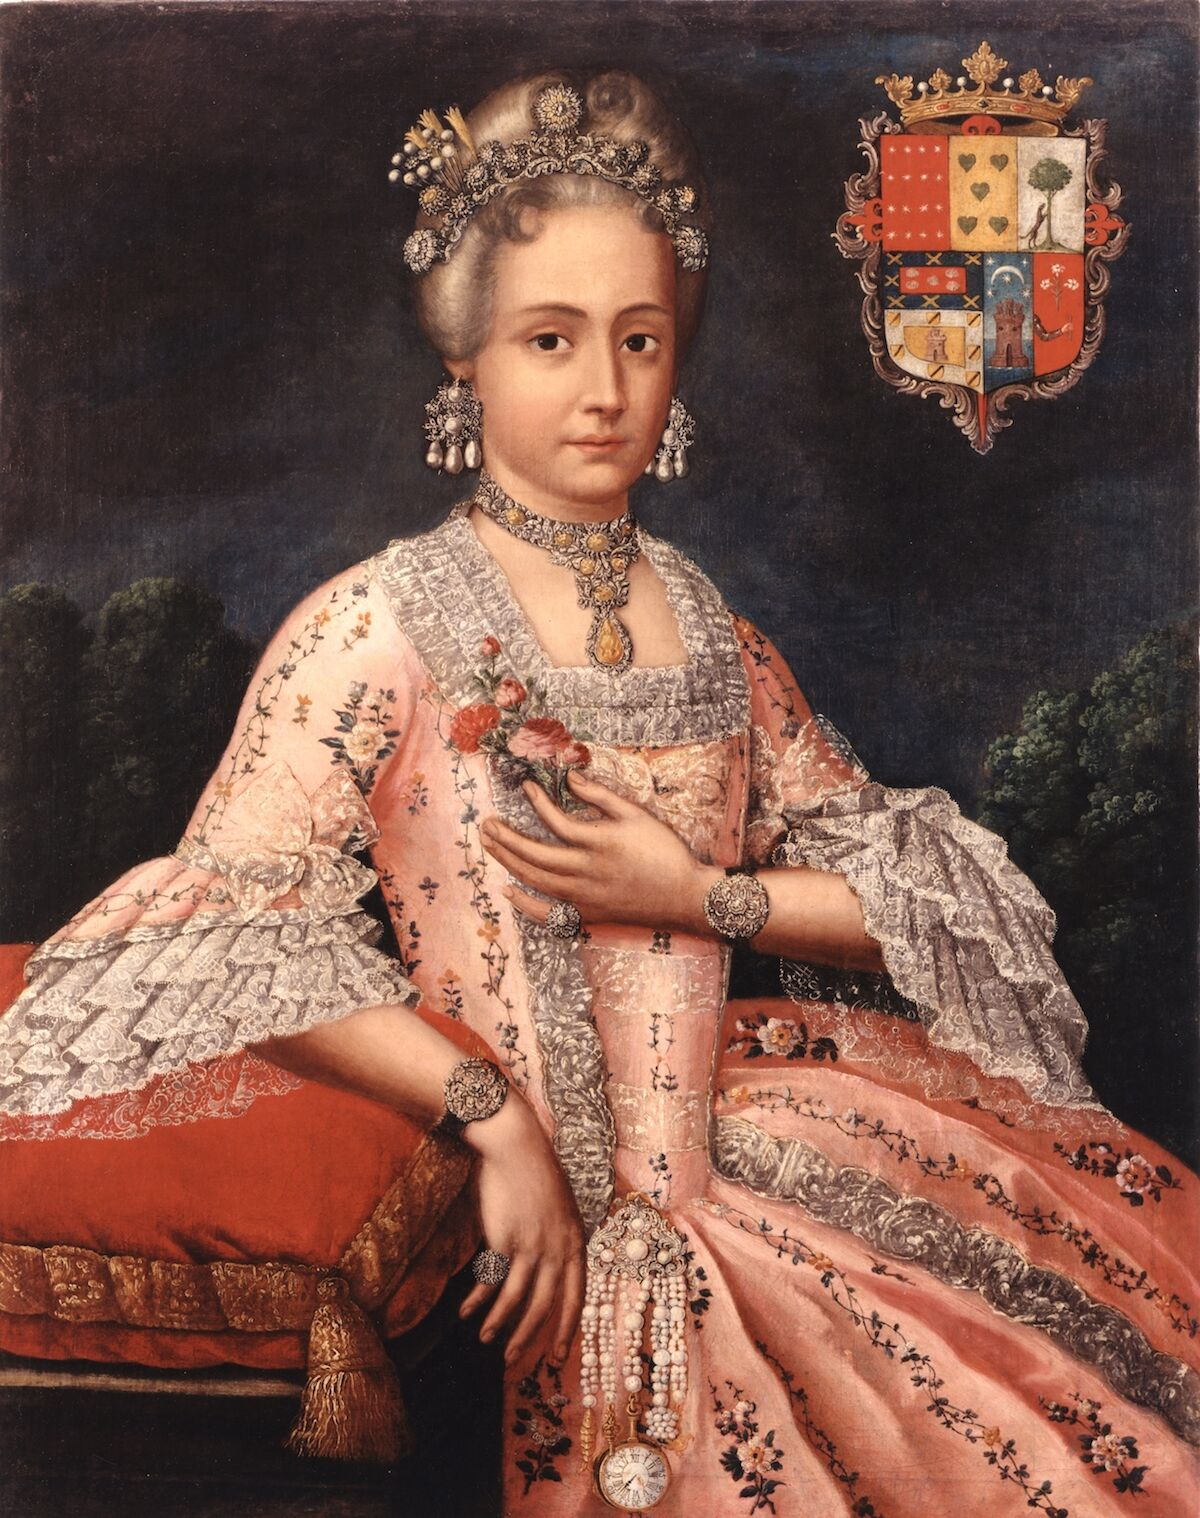 Attributed to Cristóbal Lozano, Rosa de Salazar y Gabiño, Countess of Monteblanco and Montemar Peru, c. 1763, oil on canvas. Courtesy the Blanton Museum of Art, The University of Texas at Austin.